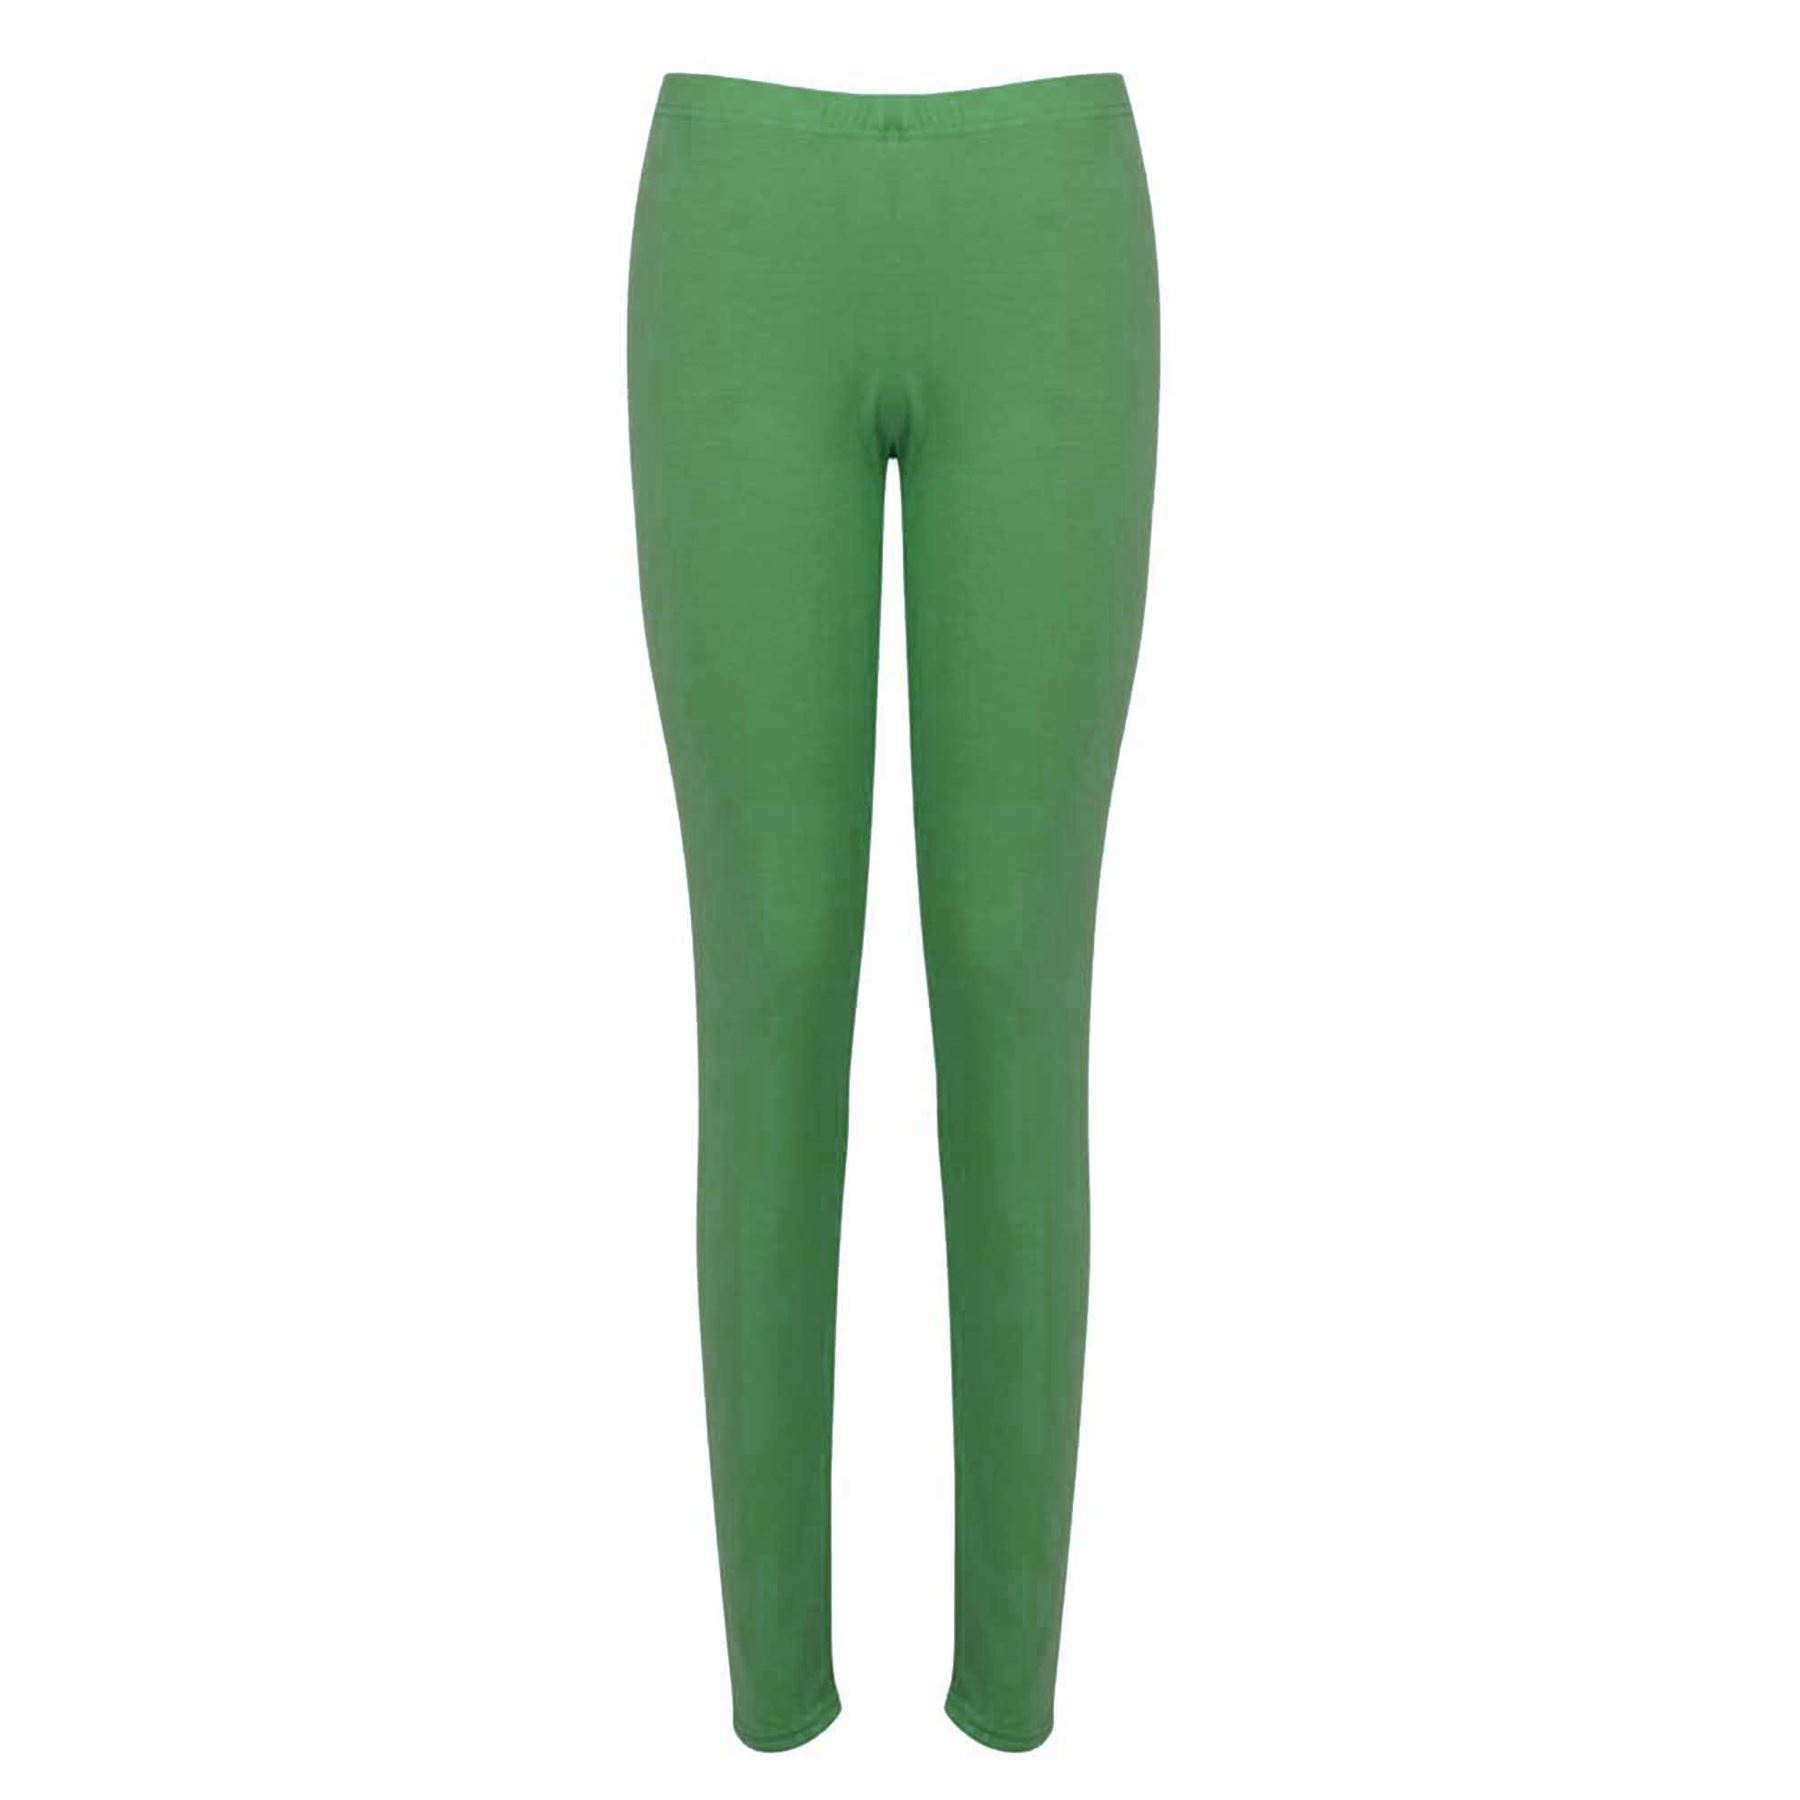 Amazing Women Solid Ankle Length Banded Waist Workout Yoga Athletic Tight Leggings Pants Actual Images Of Item Are Shown Above Size Type Regular Womens Sizes Special Plus Size Charcoal Capri Yoga Pants Plus Size Capri